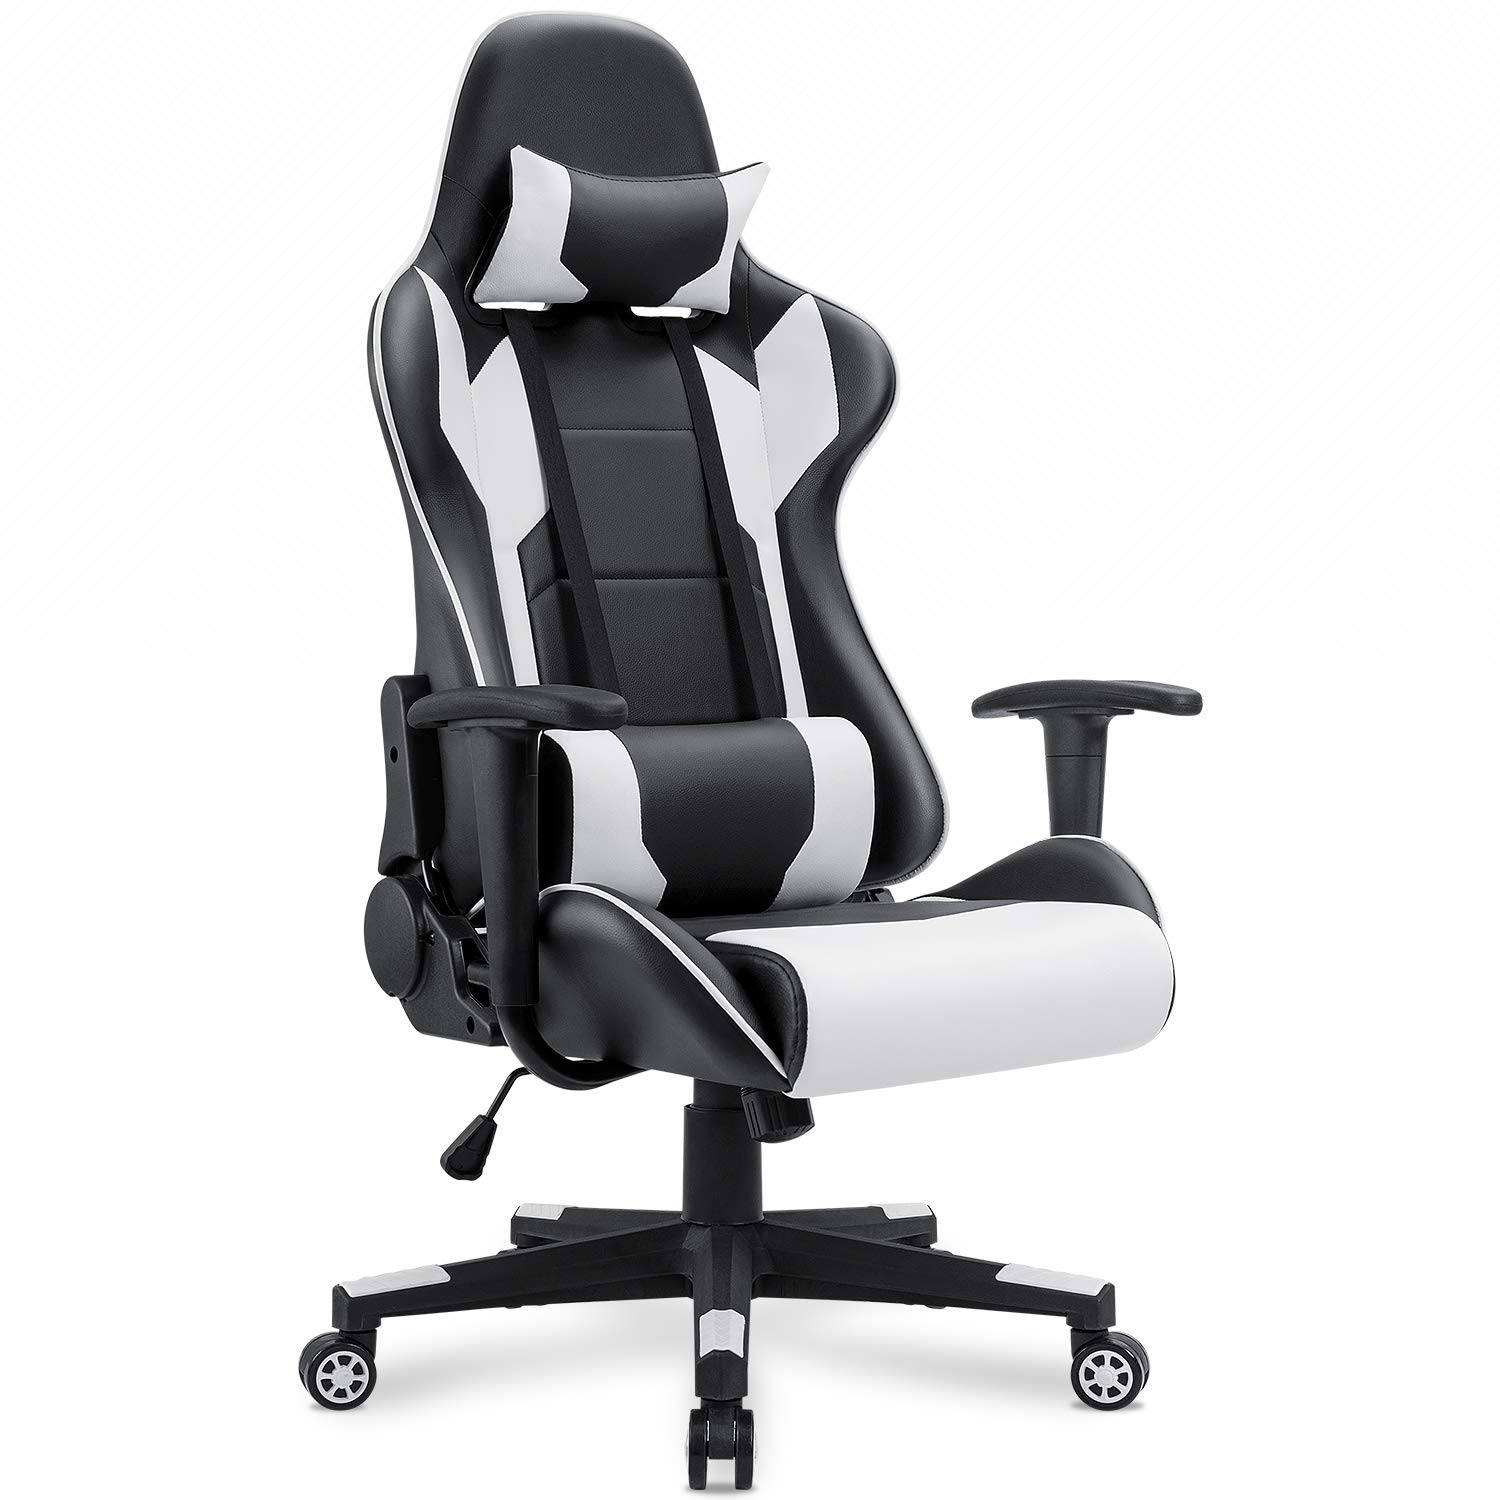 Homall Racing-Style High-Back Gaming Chair